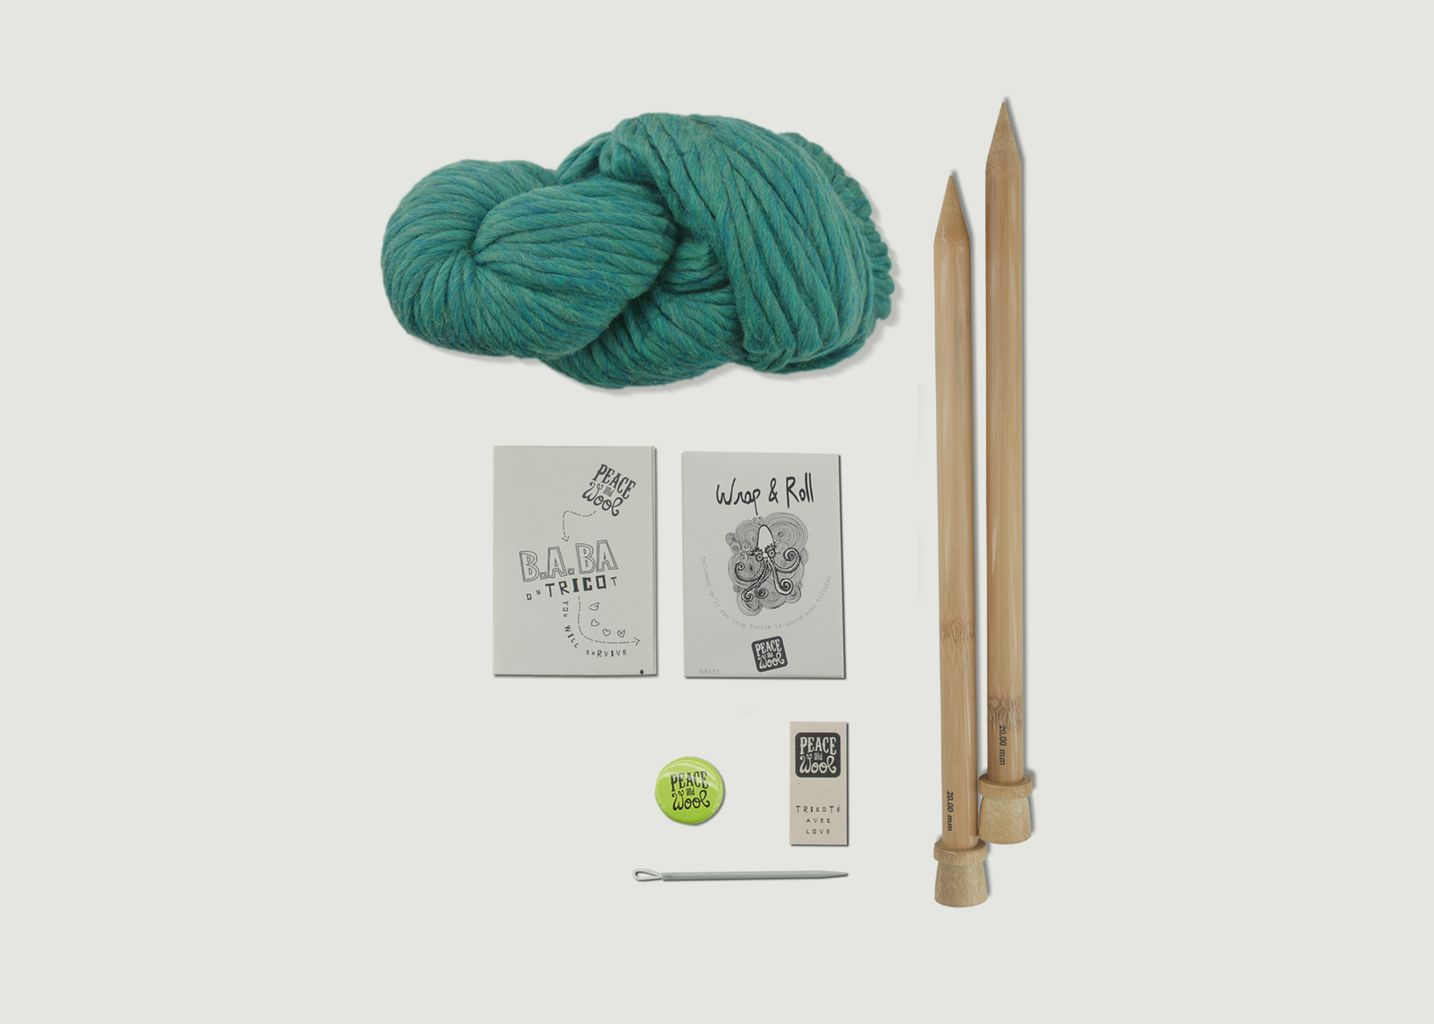 Kit Snoos - Peace and Wool